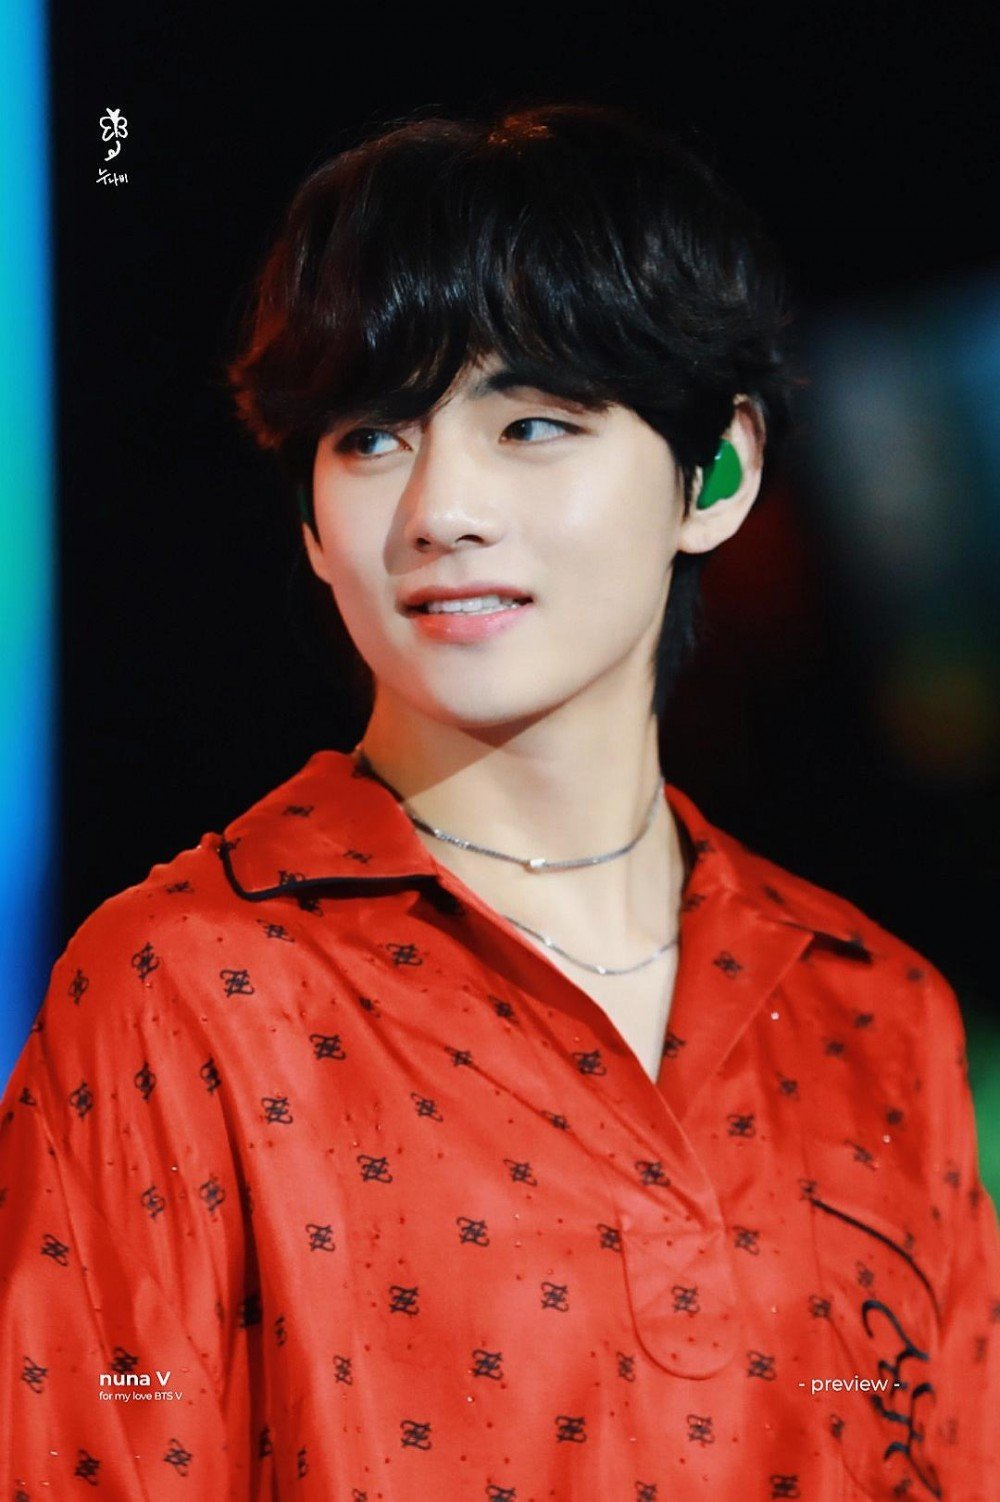 China - BTS V topic, the most followed BTS one on Weibo, has